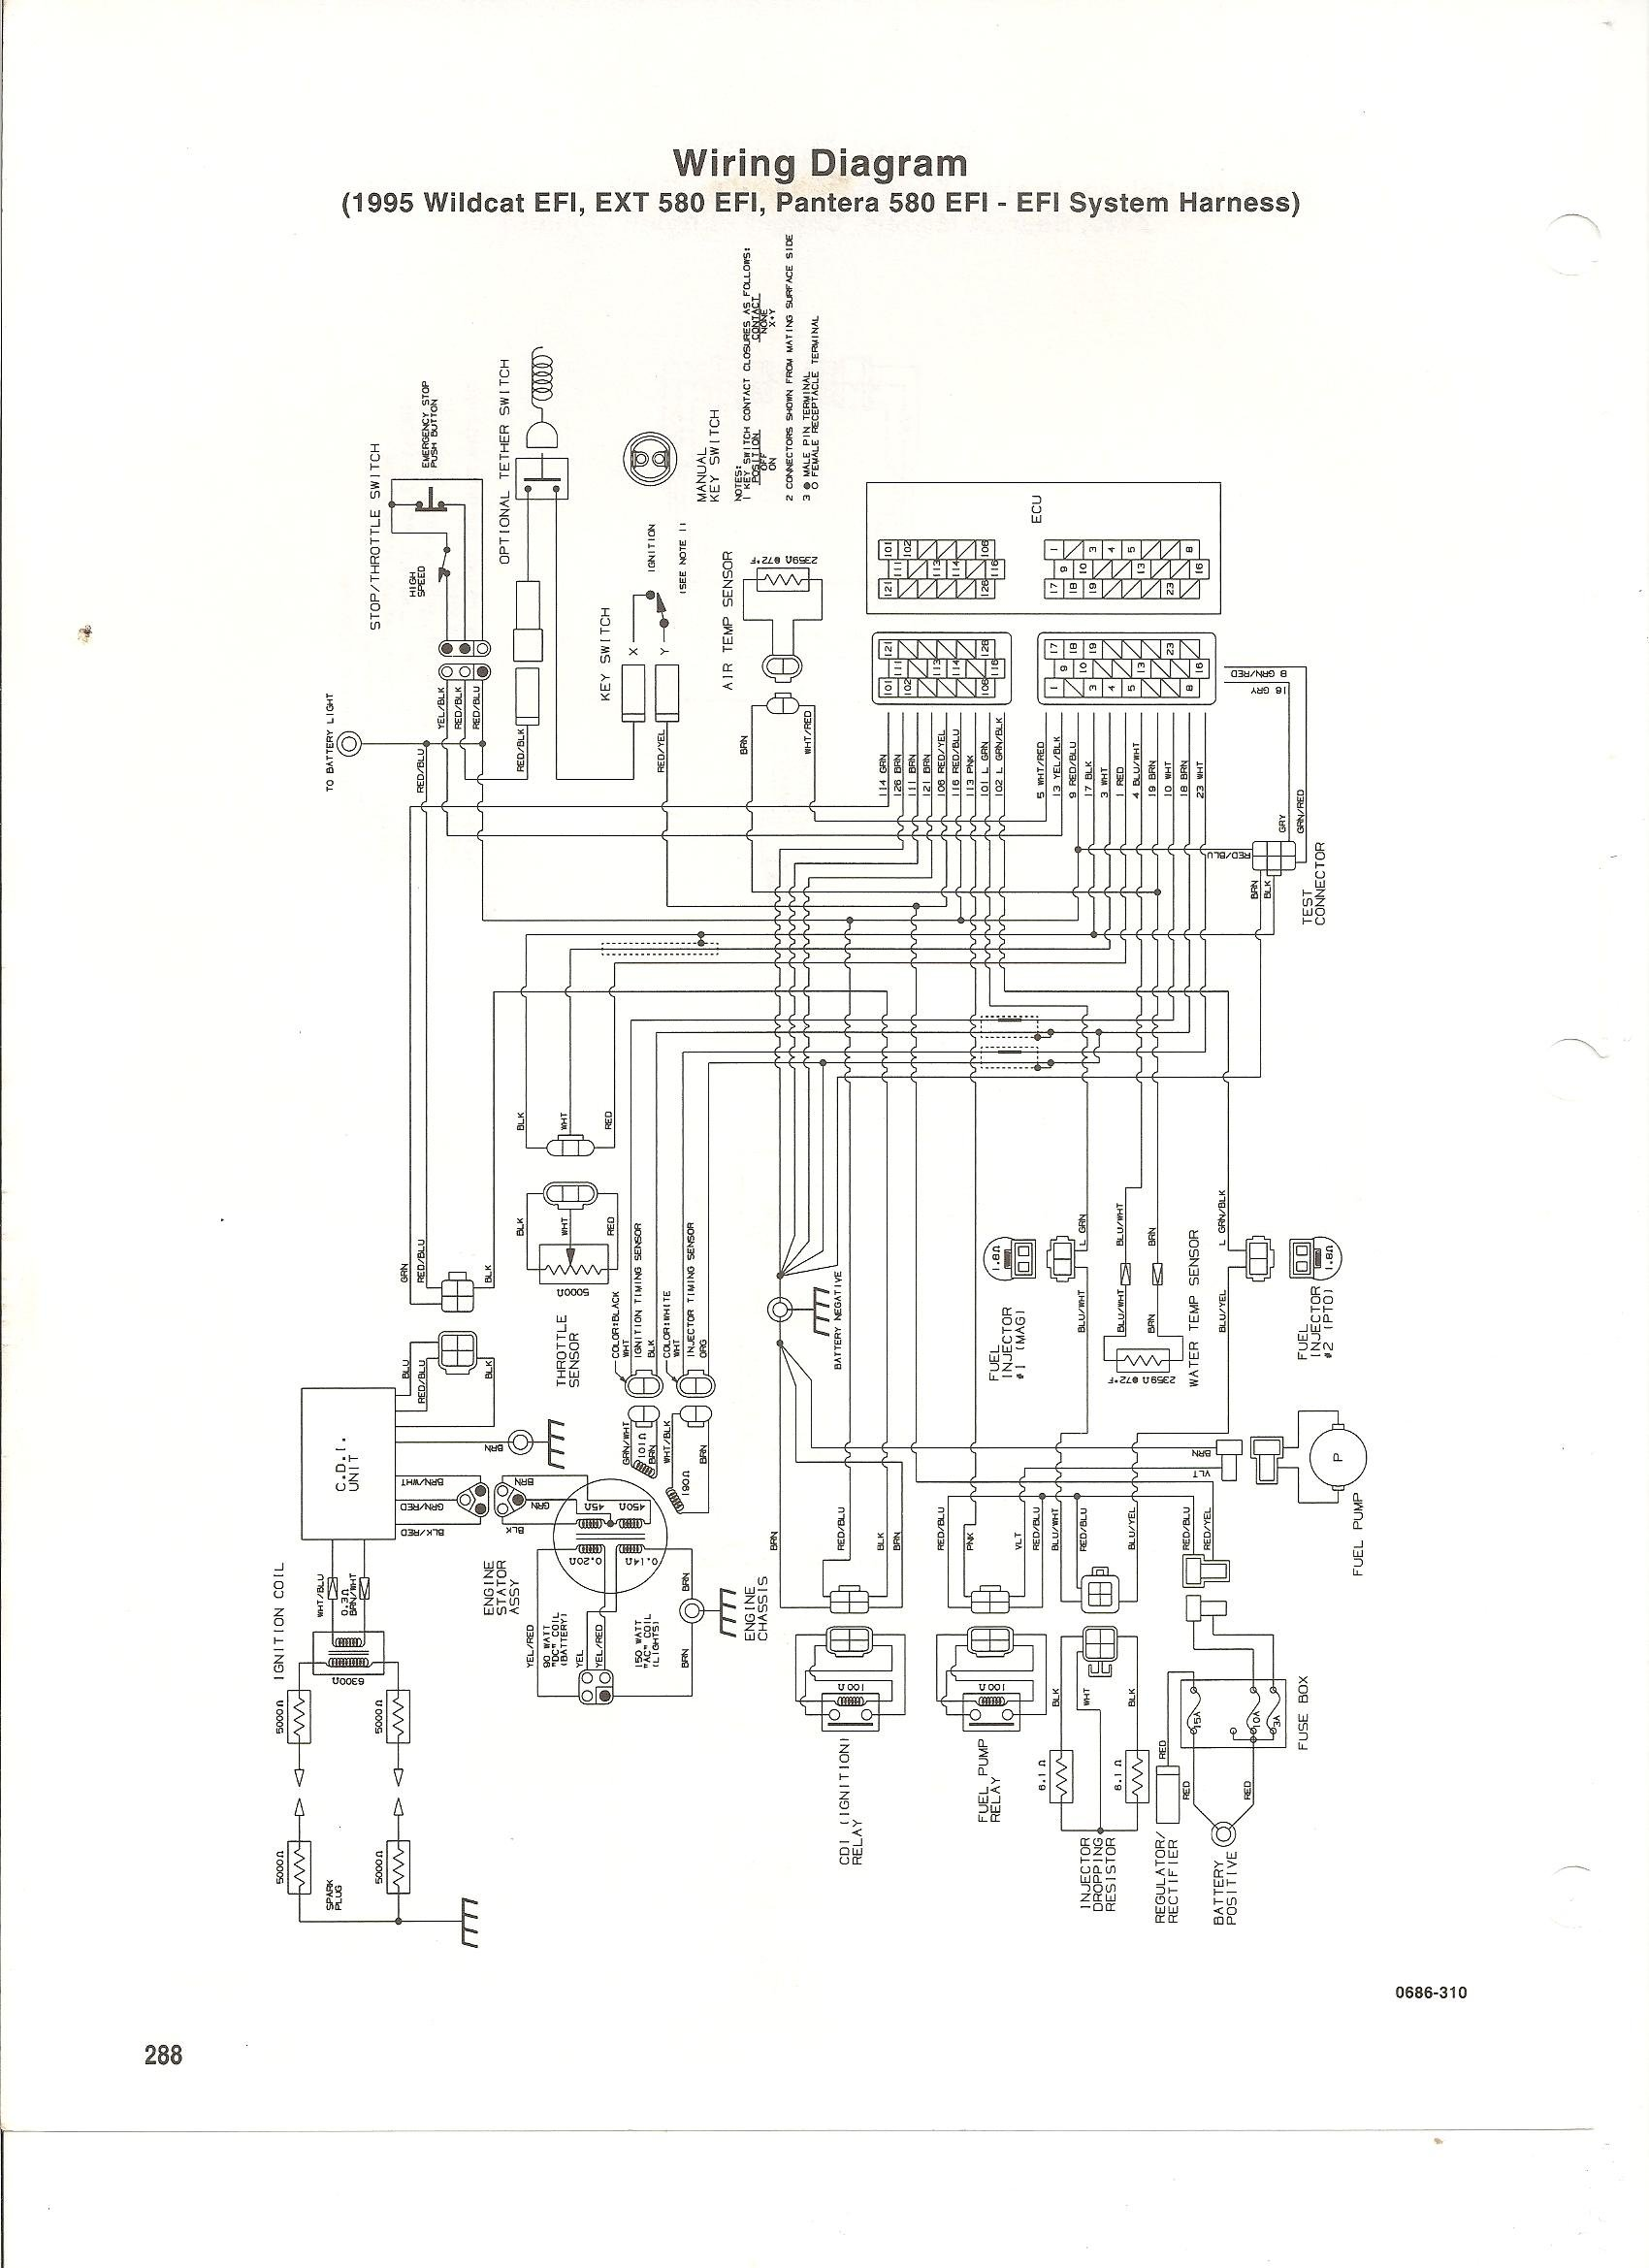 hella wiring diagram photo album wire diagram images wiring collection 1984 cr500 wiring diagram pictures wire